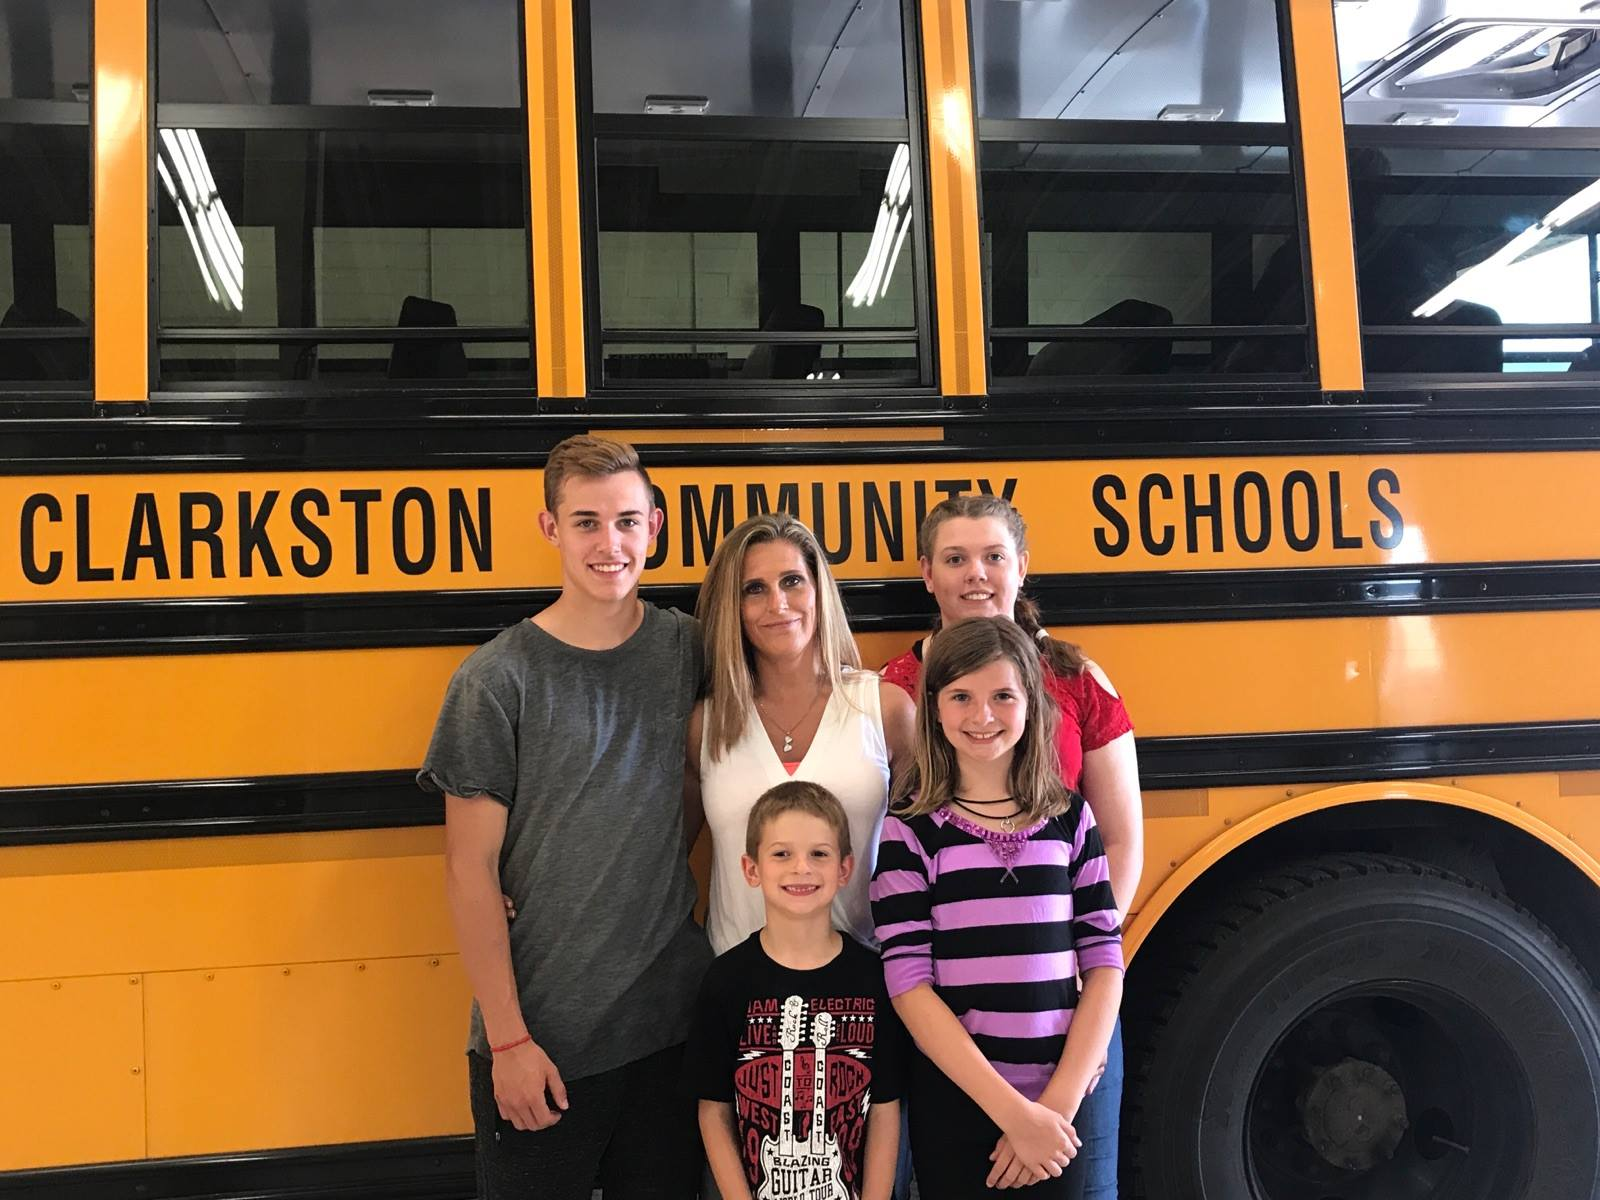 A Clarkston Bus Driver with her Family